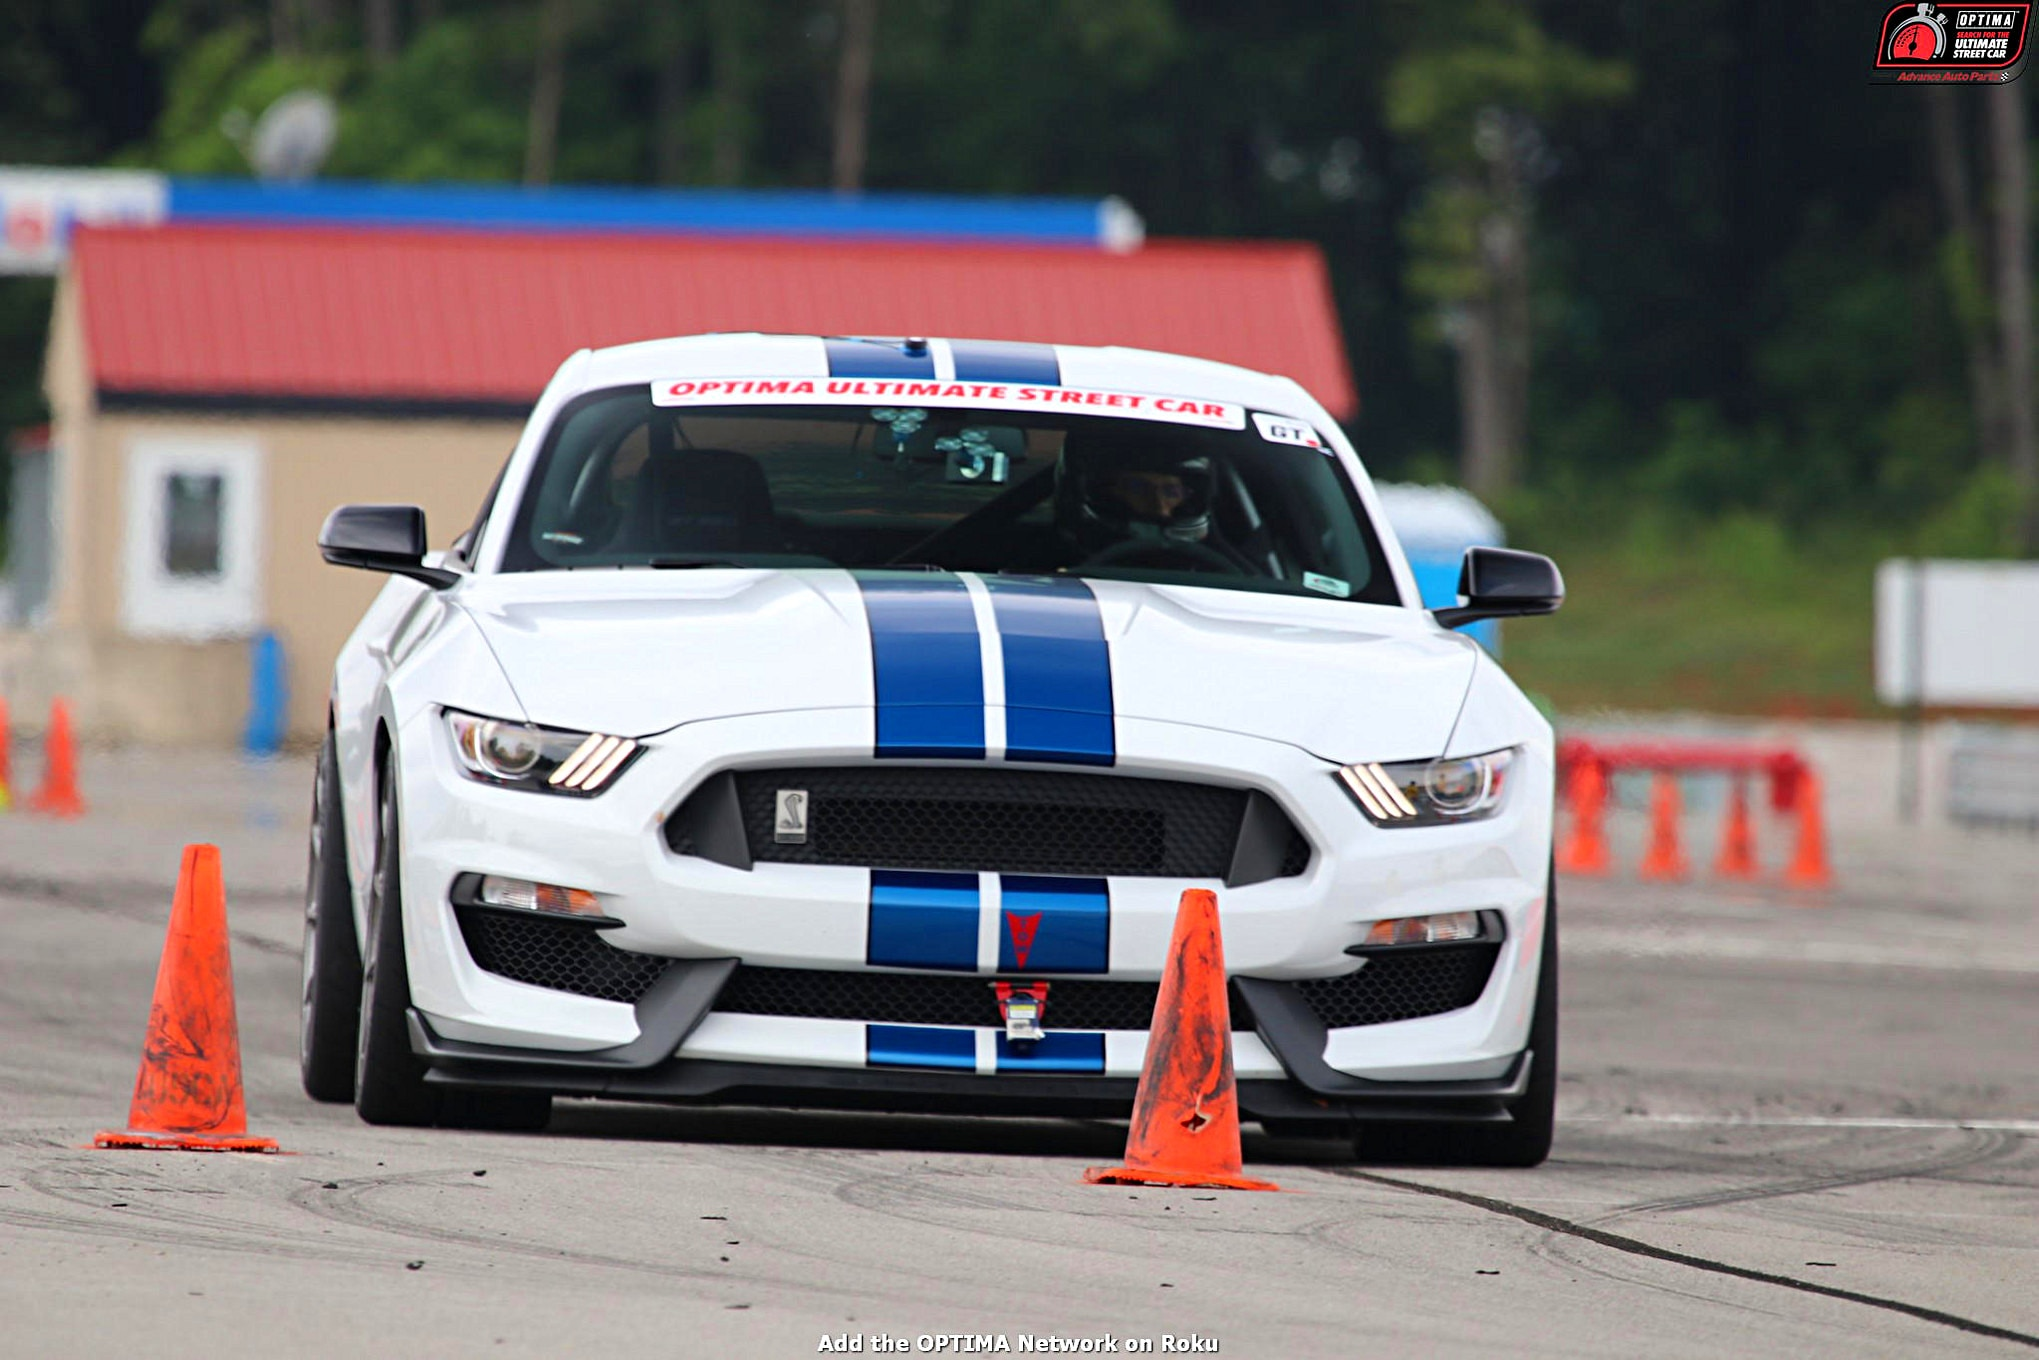 MMFF Charlie Rogers 2017 Ford Shelby GT350 DriveOPTIMA NCM Motorsports Park 2018 130 004